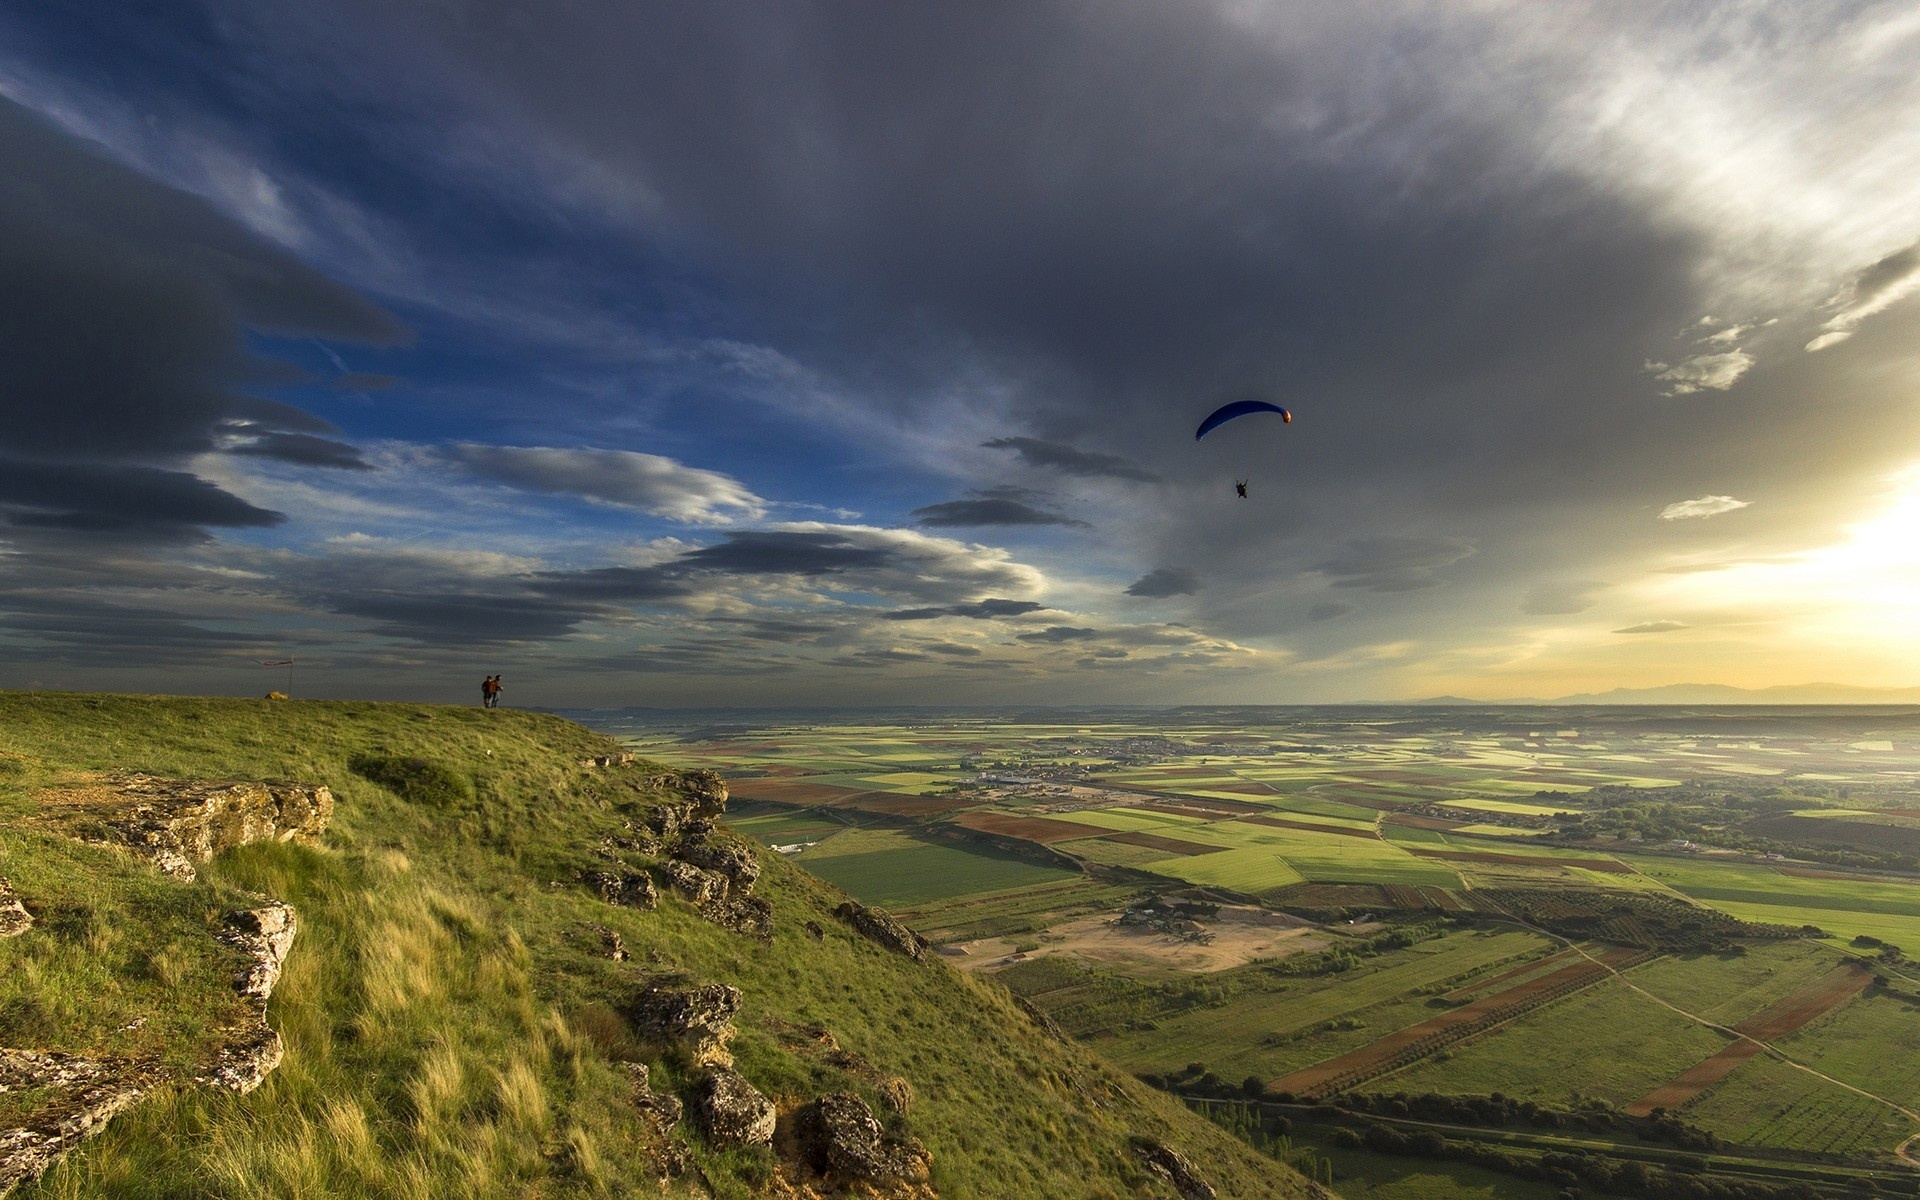 parachute skydiving sky clouds sunlight sunset sunrise flight fly people mountains hills nature landscapes fields grass plants green scenic view